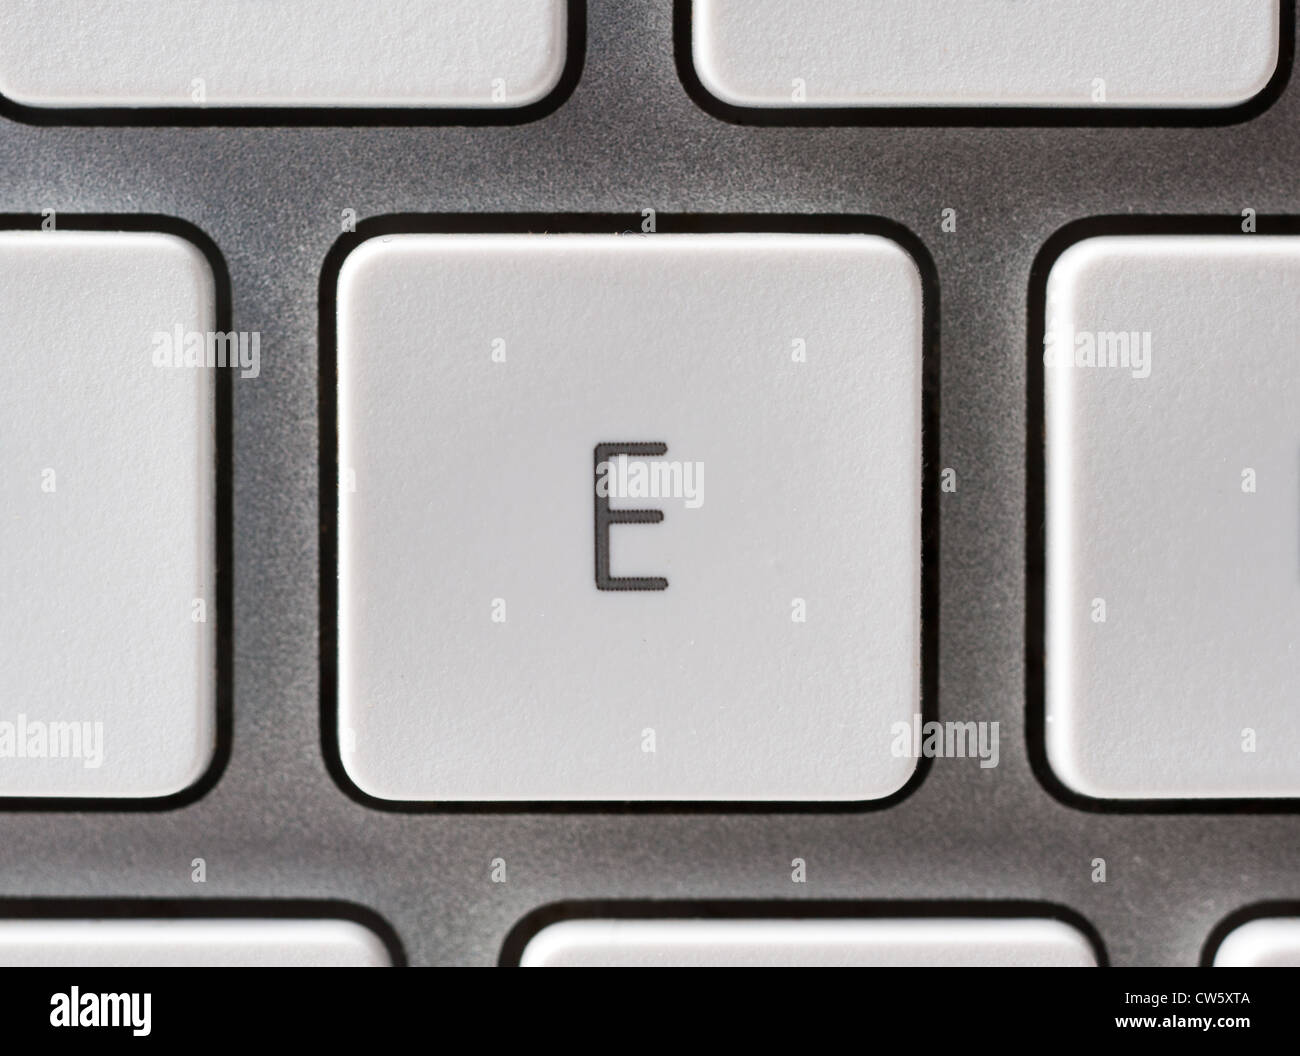 Letter E on an Apple keyboard - Stock Image